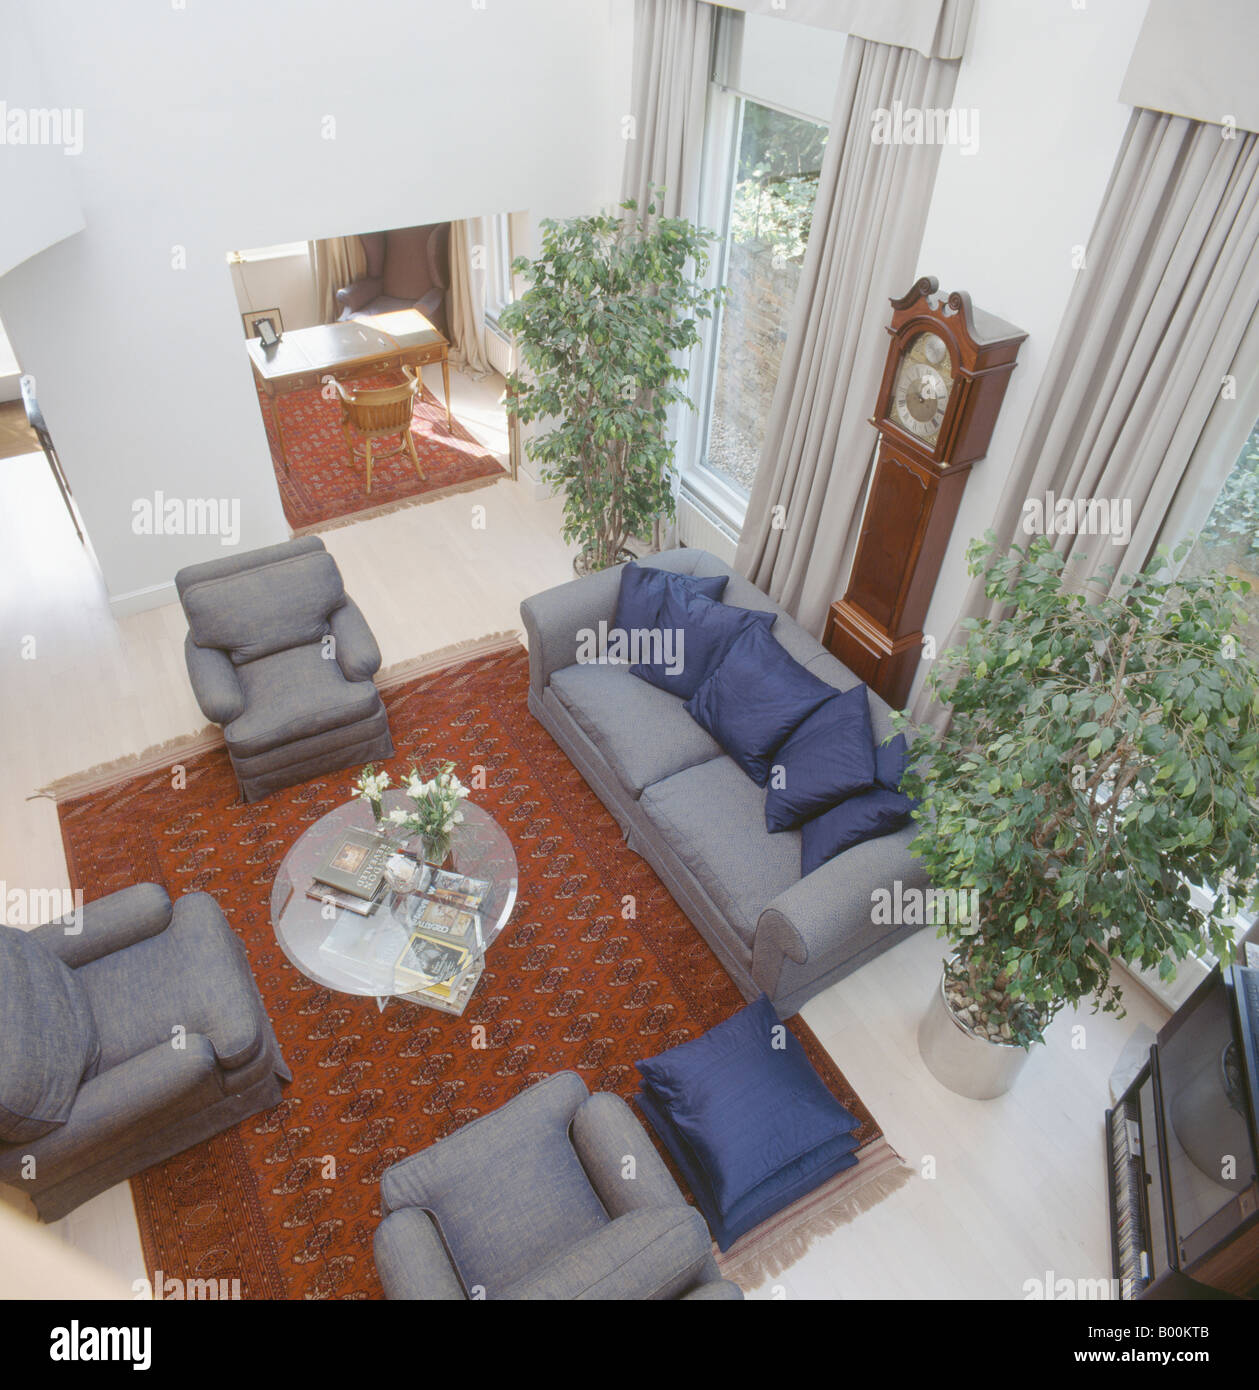 Aerial View Of Eighties Living Room With Gray Sofa And Armchairs And